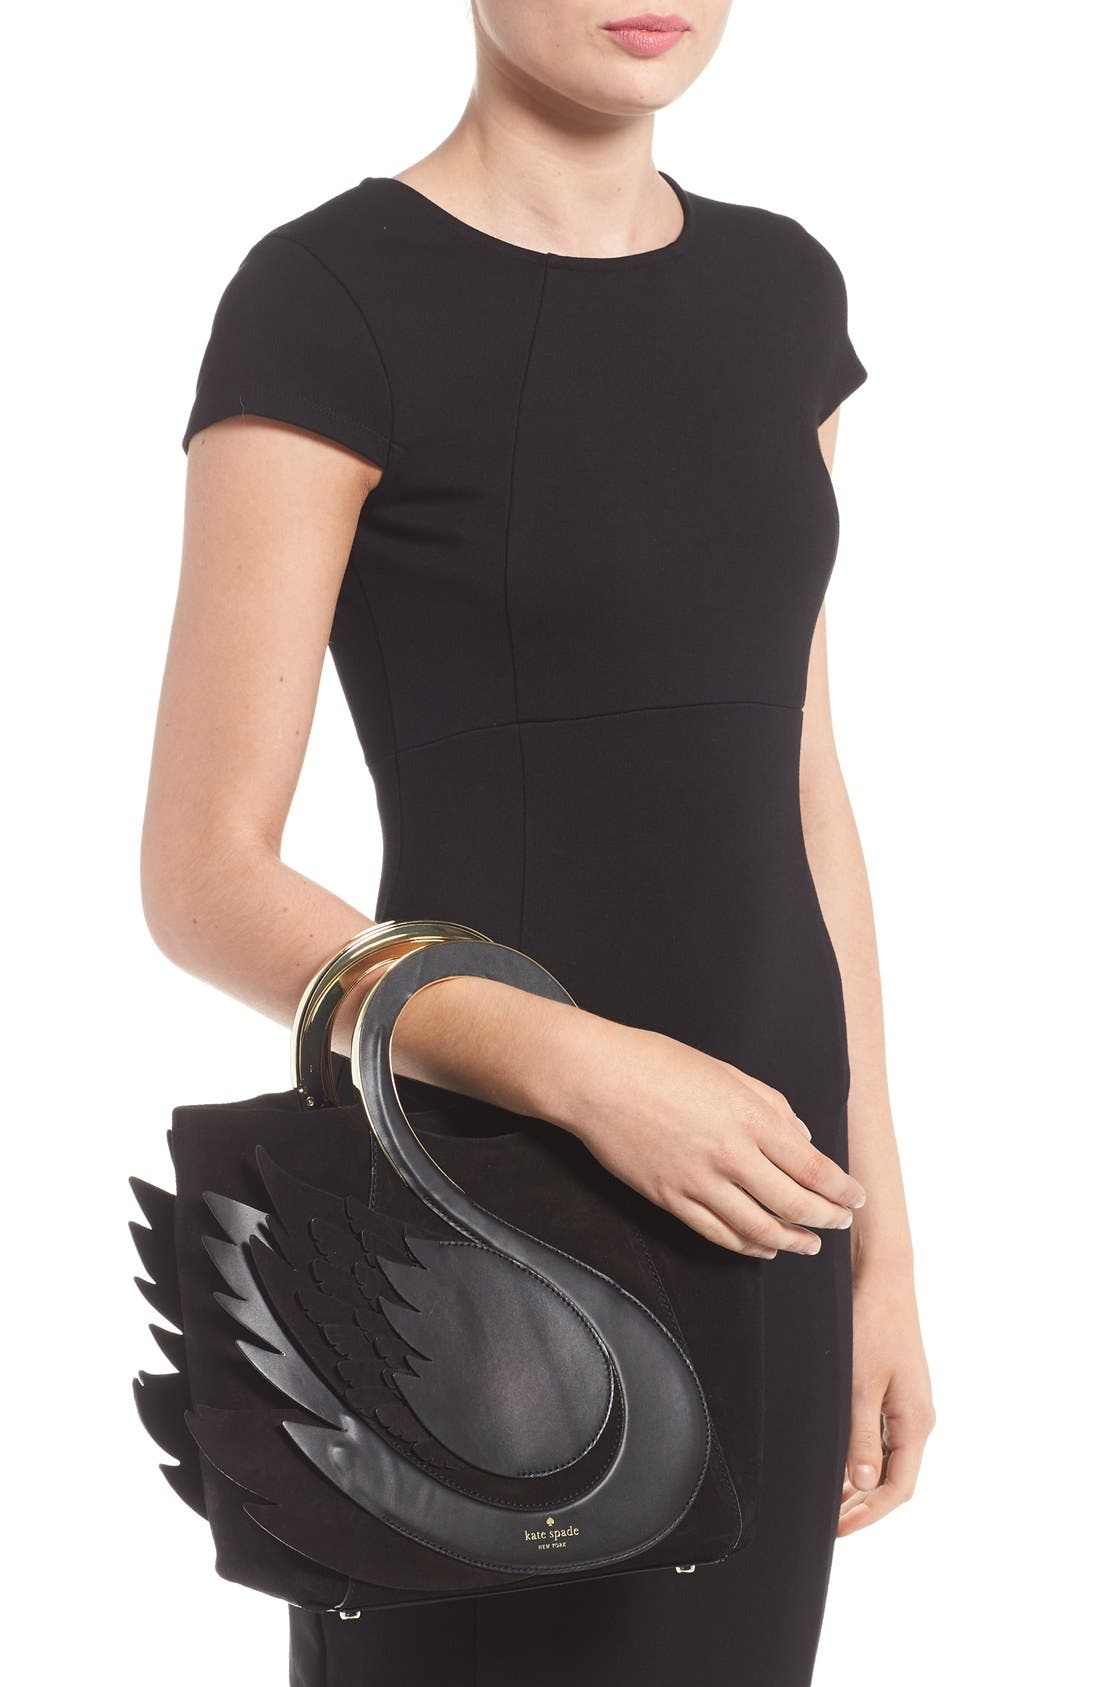 'on pointe - swan' suede & leather handbag,                             Alternate thumbnail 6, color,                             001